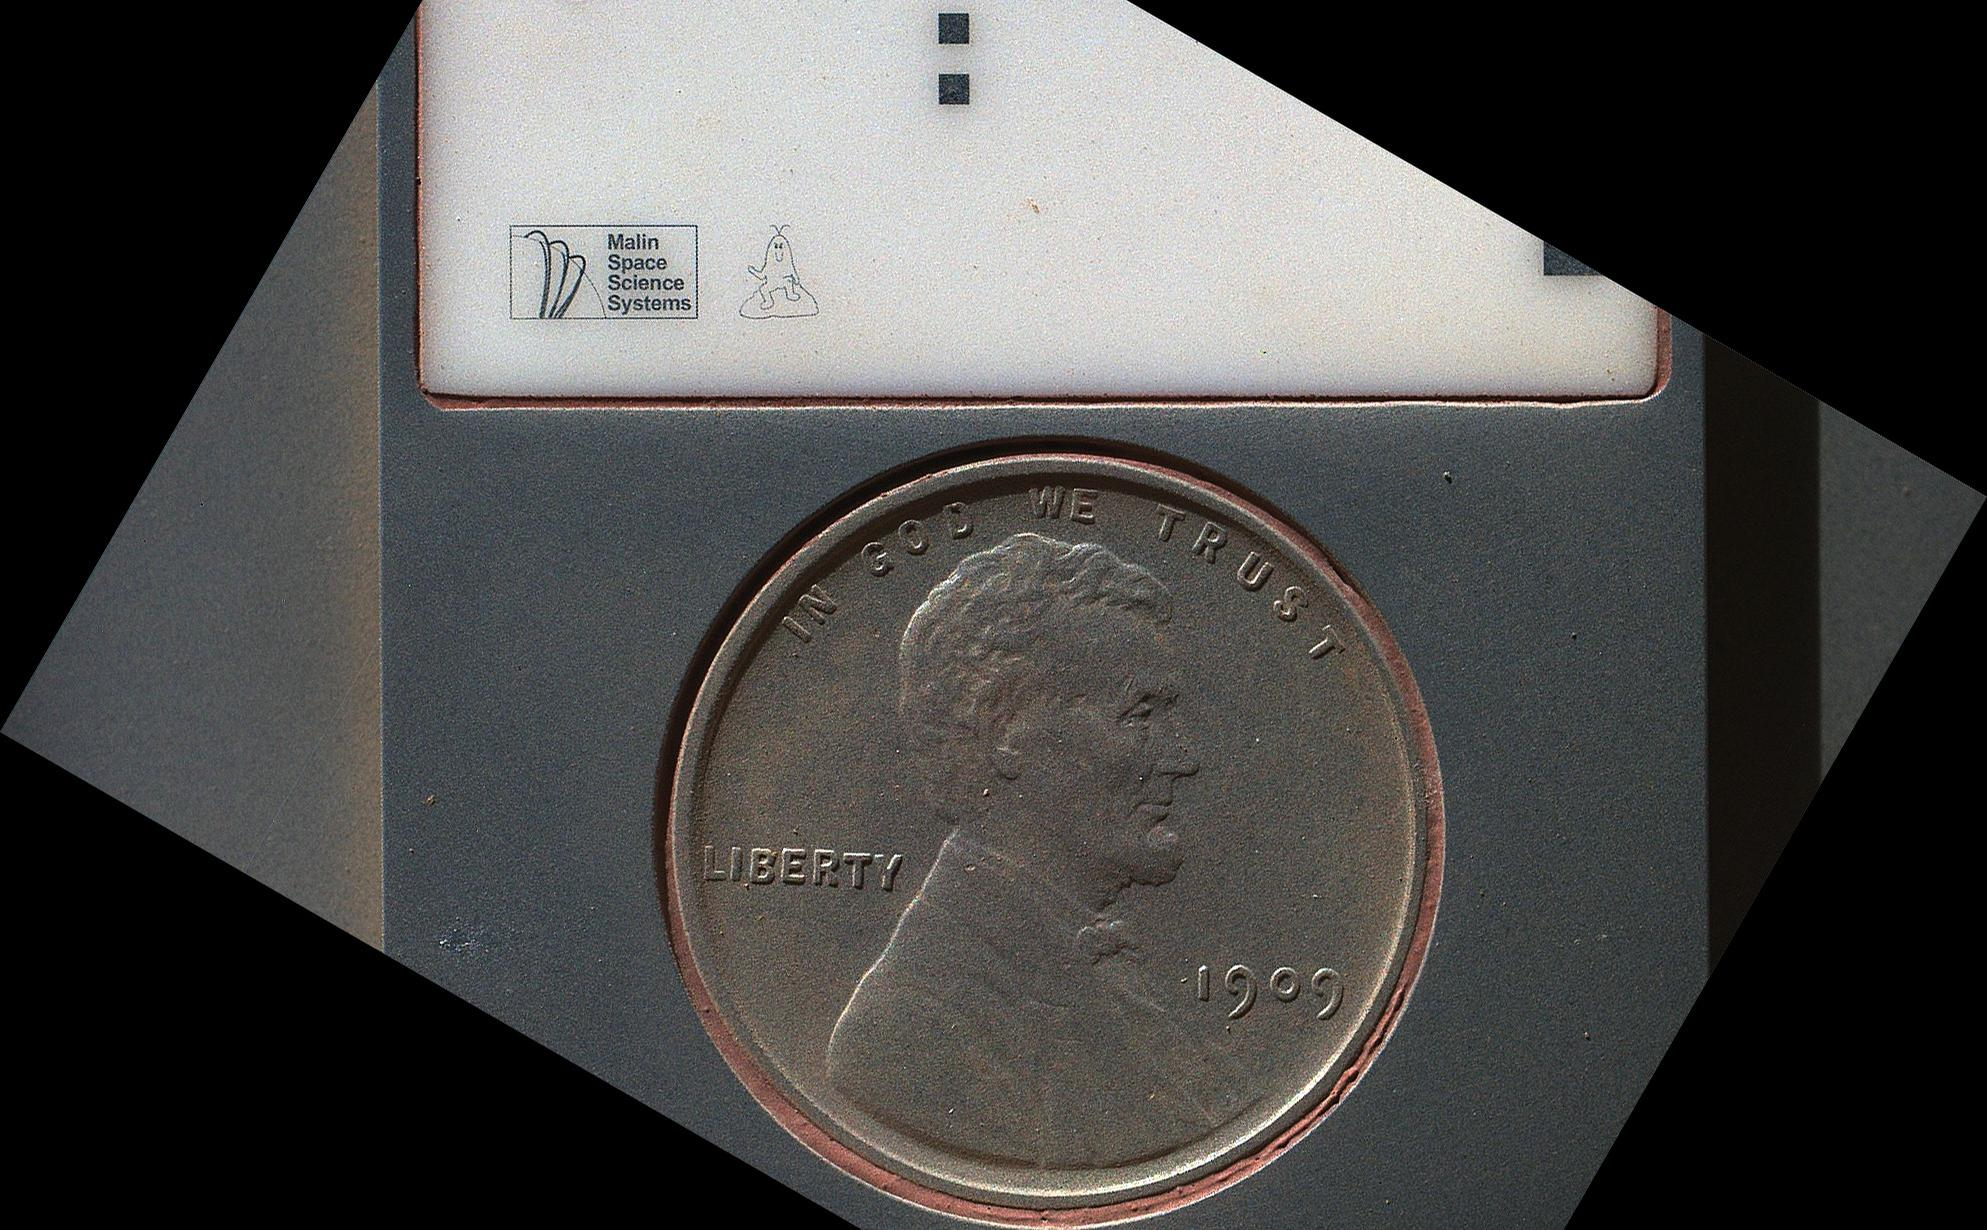 The penny in this image is part of a camera calibration target on NASA's Mars rover Curiosity.